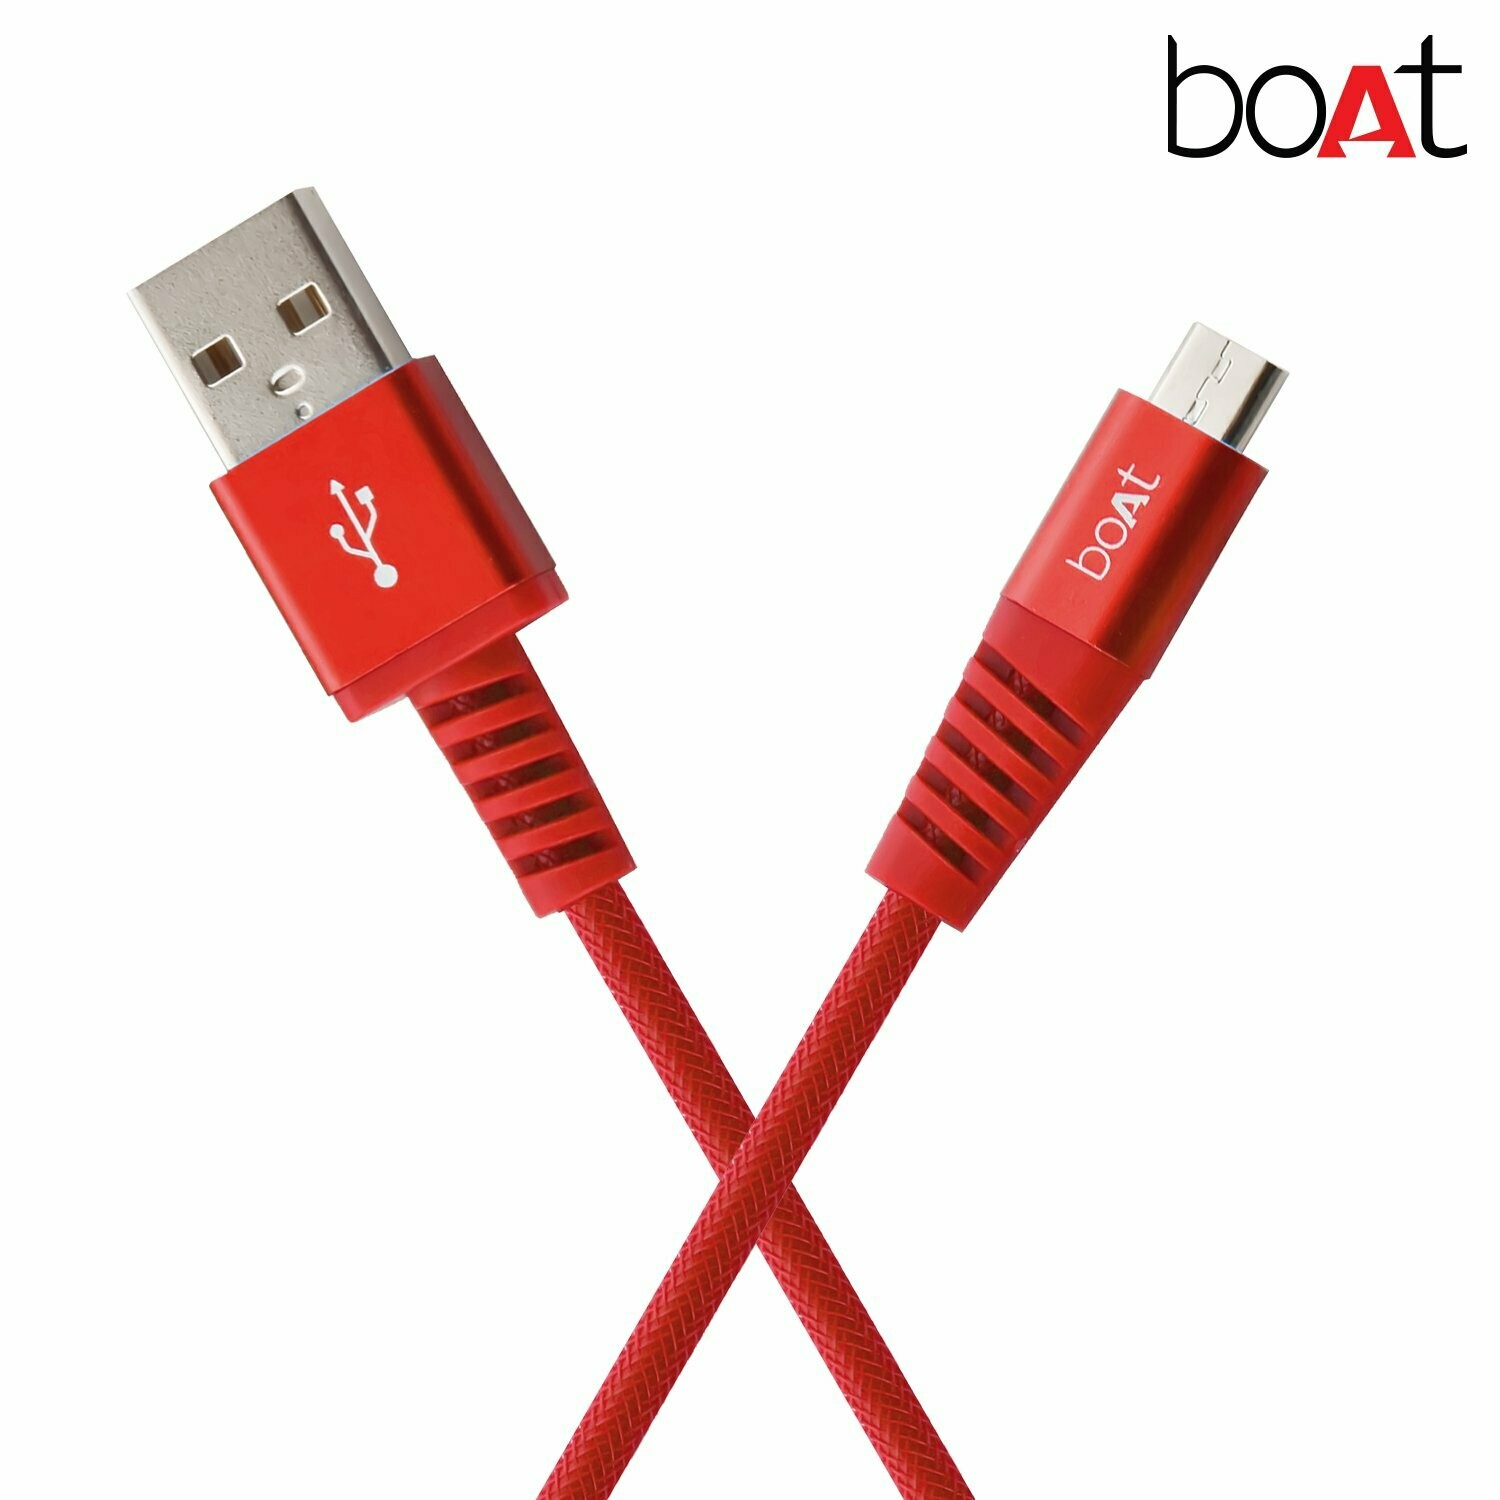 boAt para-Armour Micro USB Cable - 1.5m Red